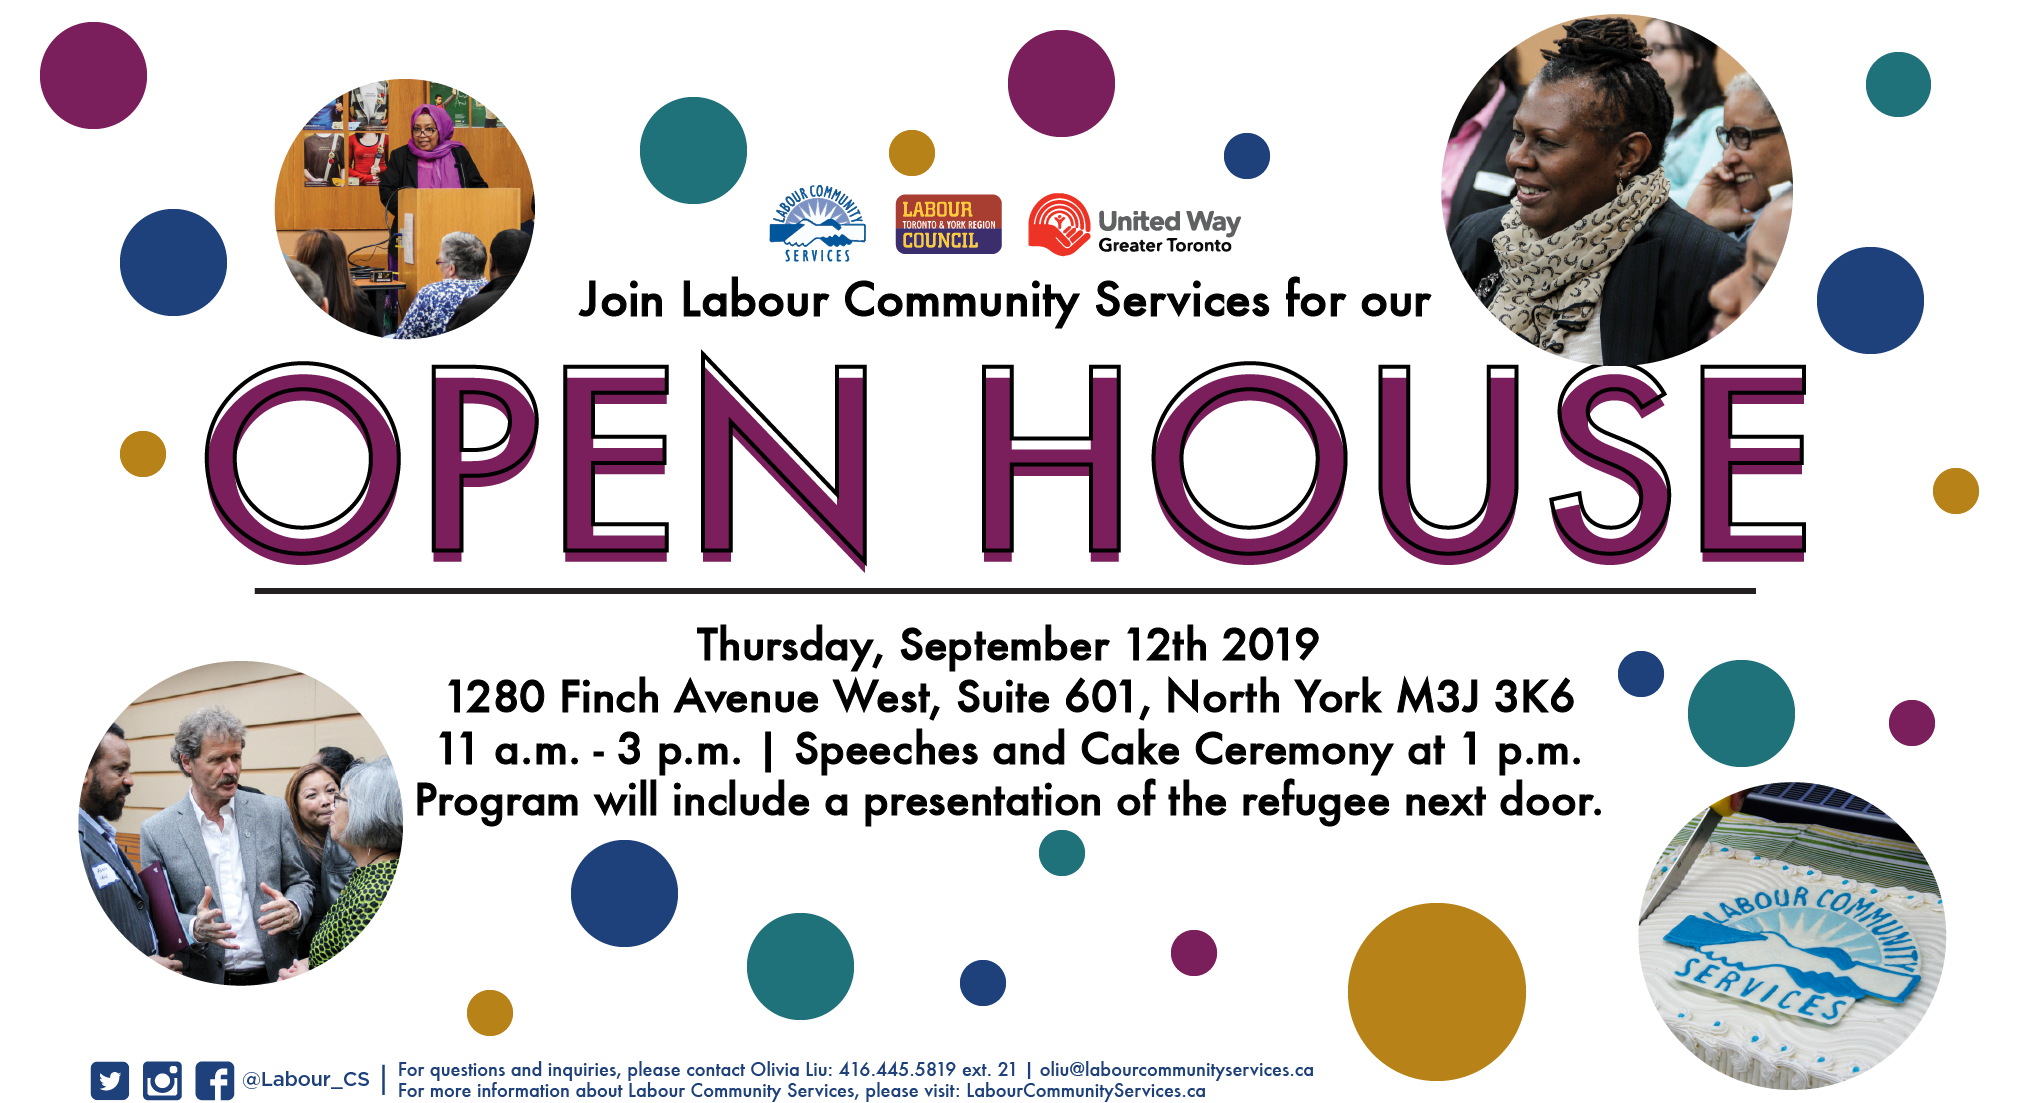 LCS_Open_house_-_Web_banner_-_September_12th_2019.png